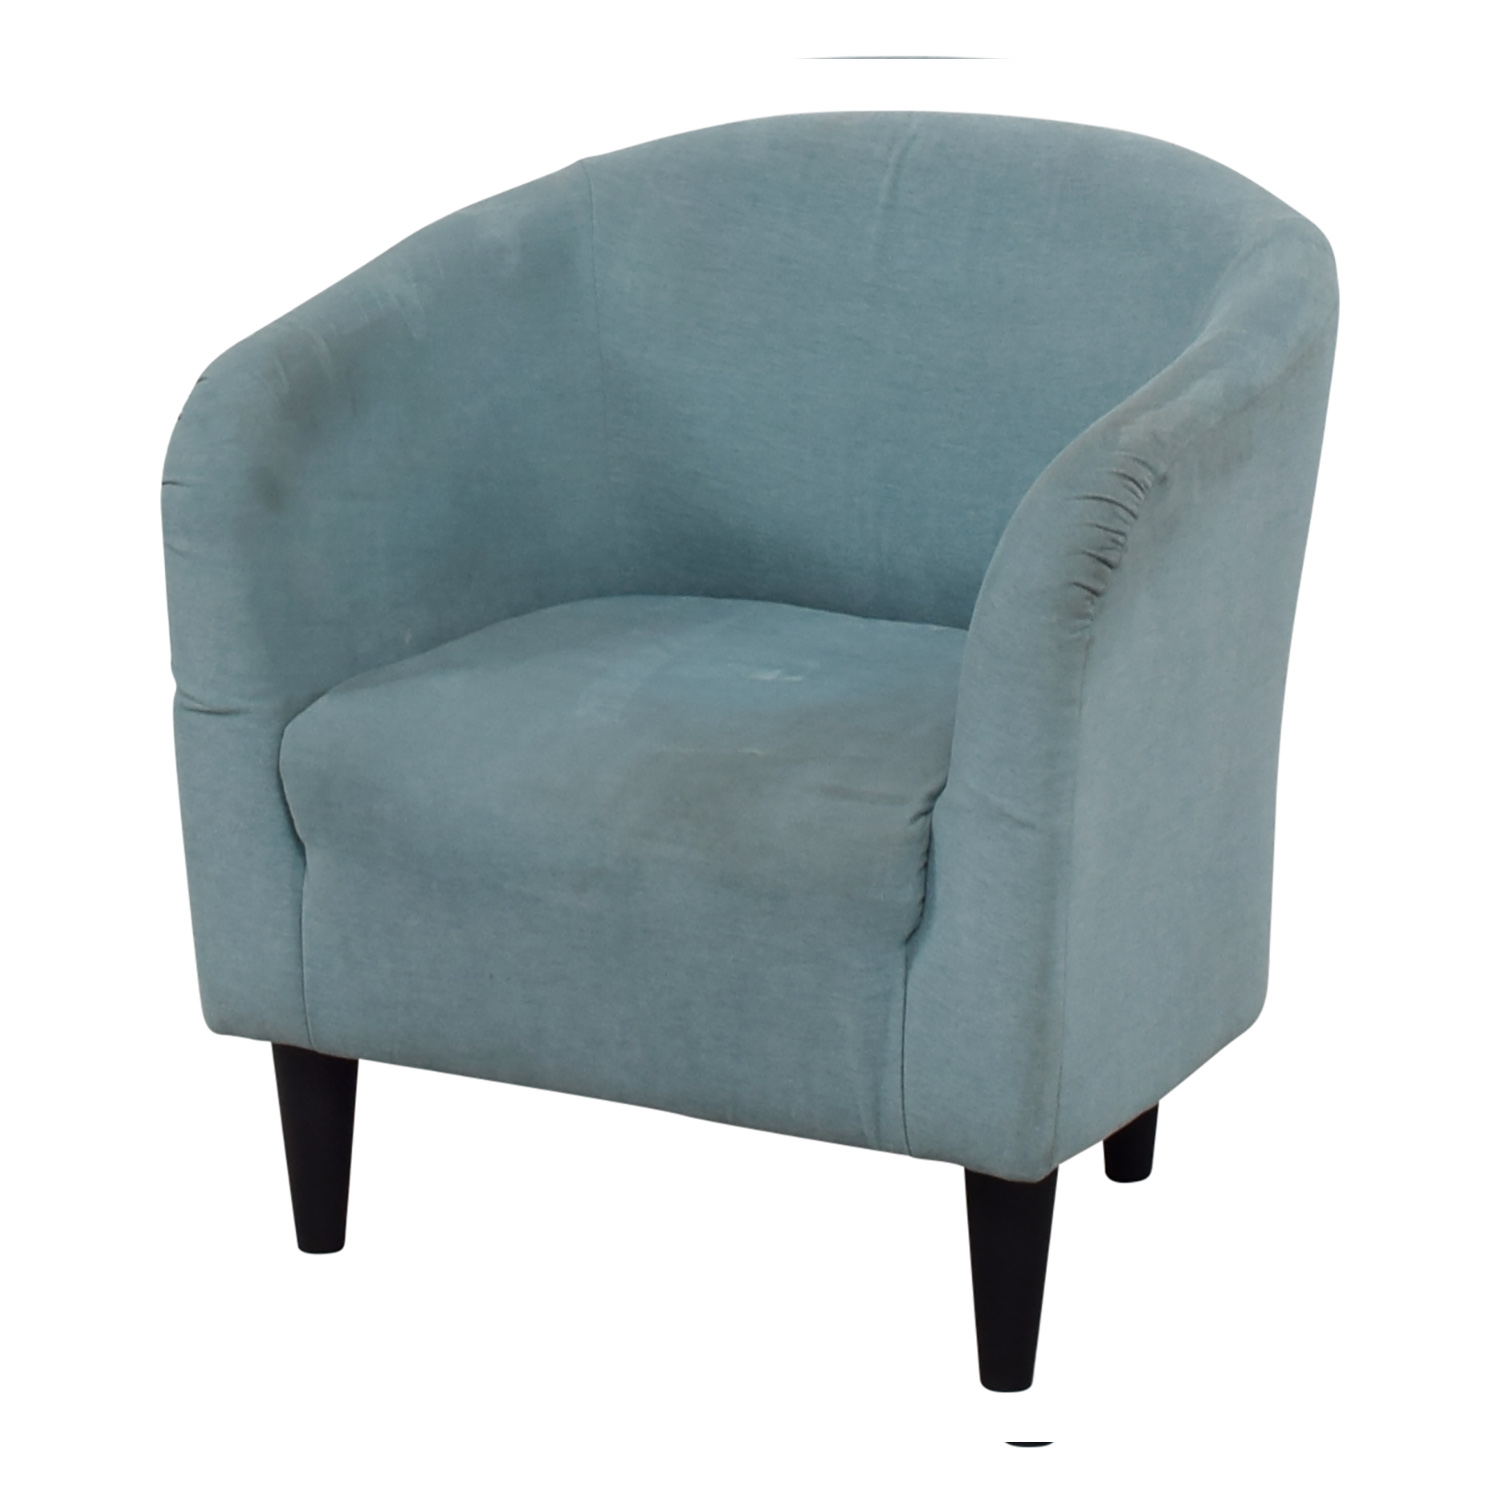 buy Wayfair Sky Blue Accent Chair Wayfair Accent Chairs